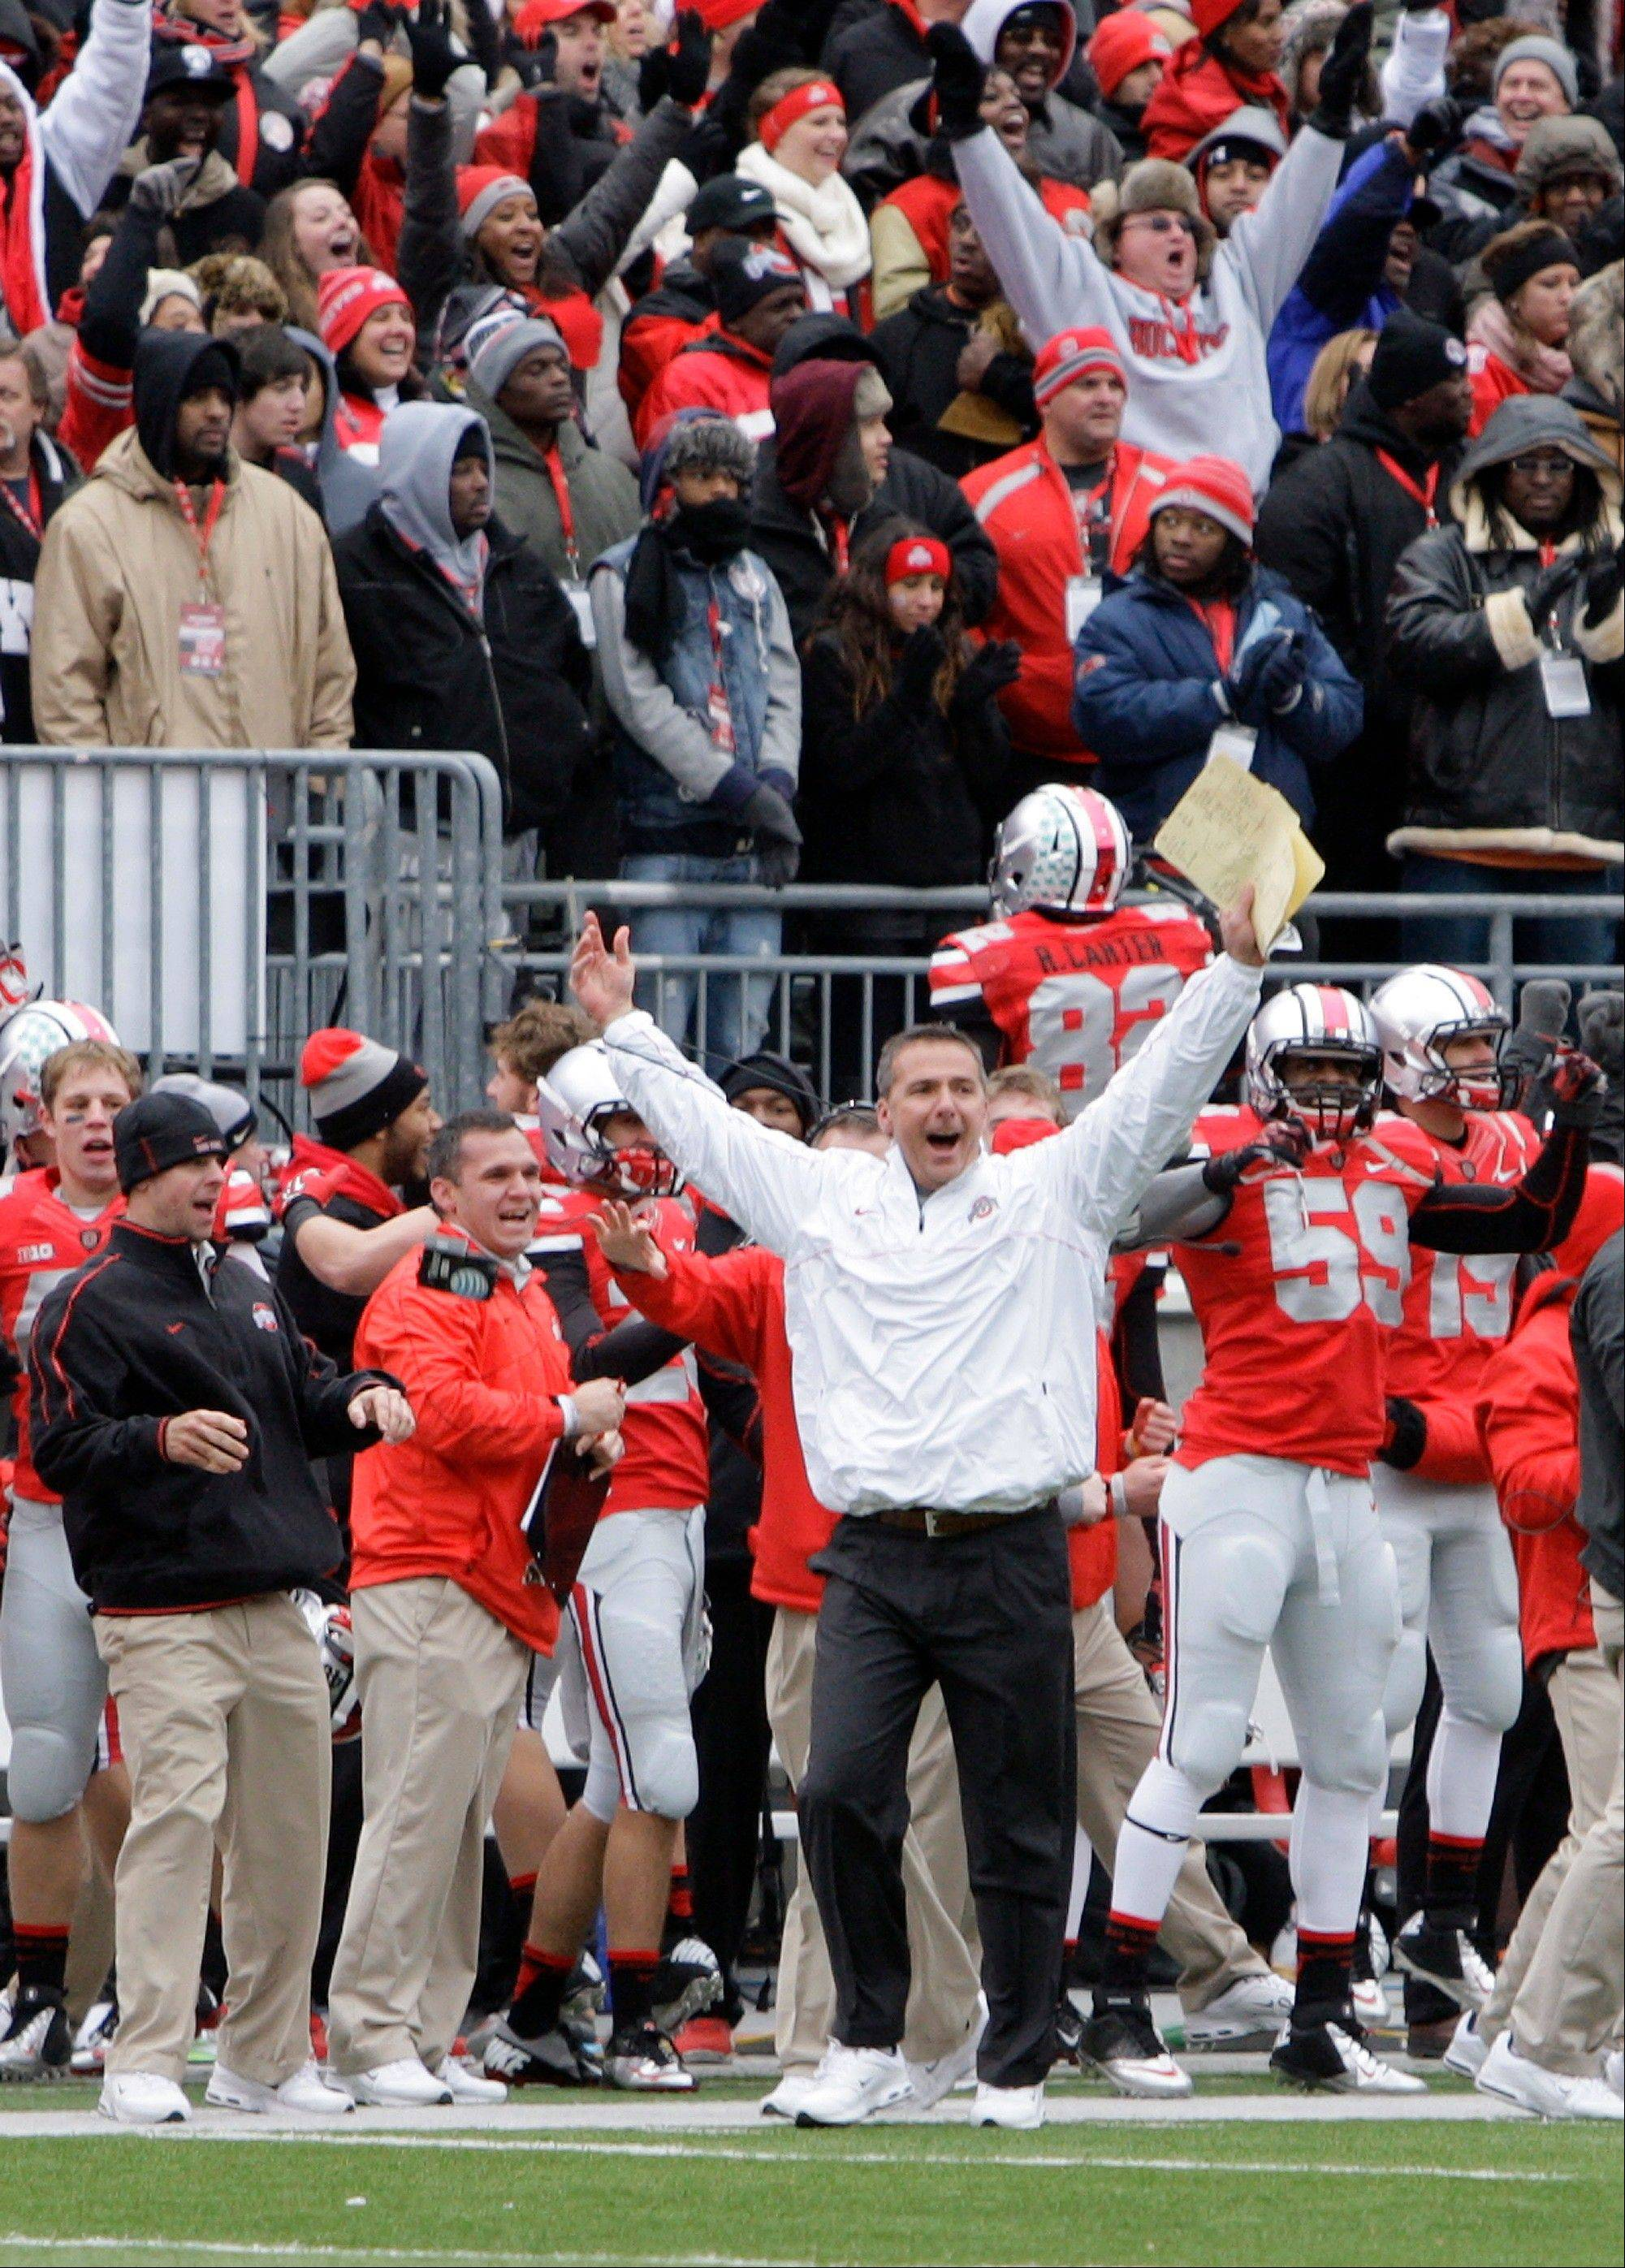 Ohio State head coach Urban Meyer celebrates as time runs off the clock in the Buckeyes' 26-21 home win over Michigan on Saturday. Ohio State went 12-0 this season but can't play in a bowl game.